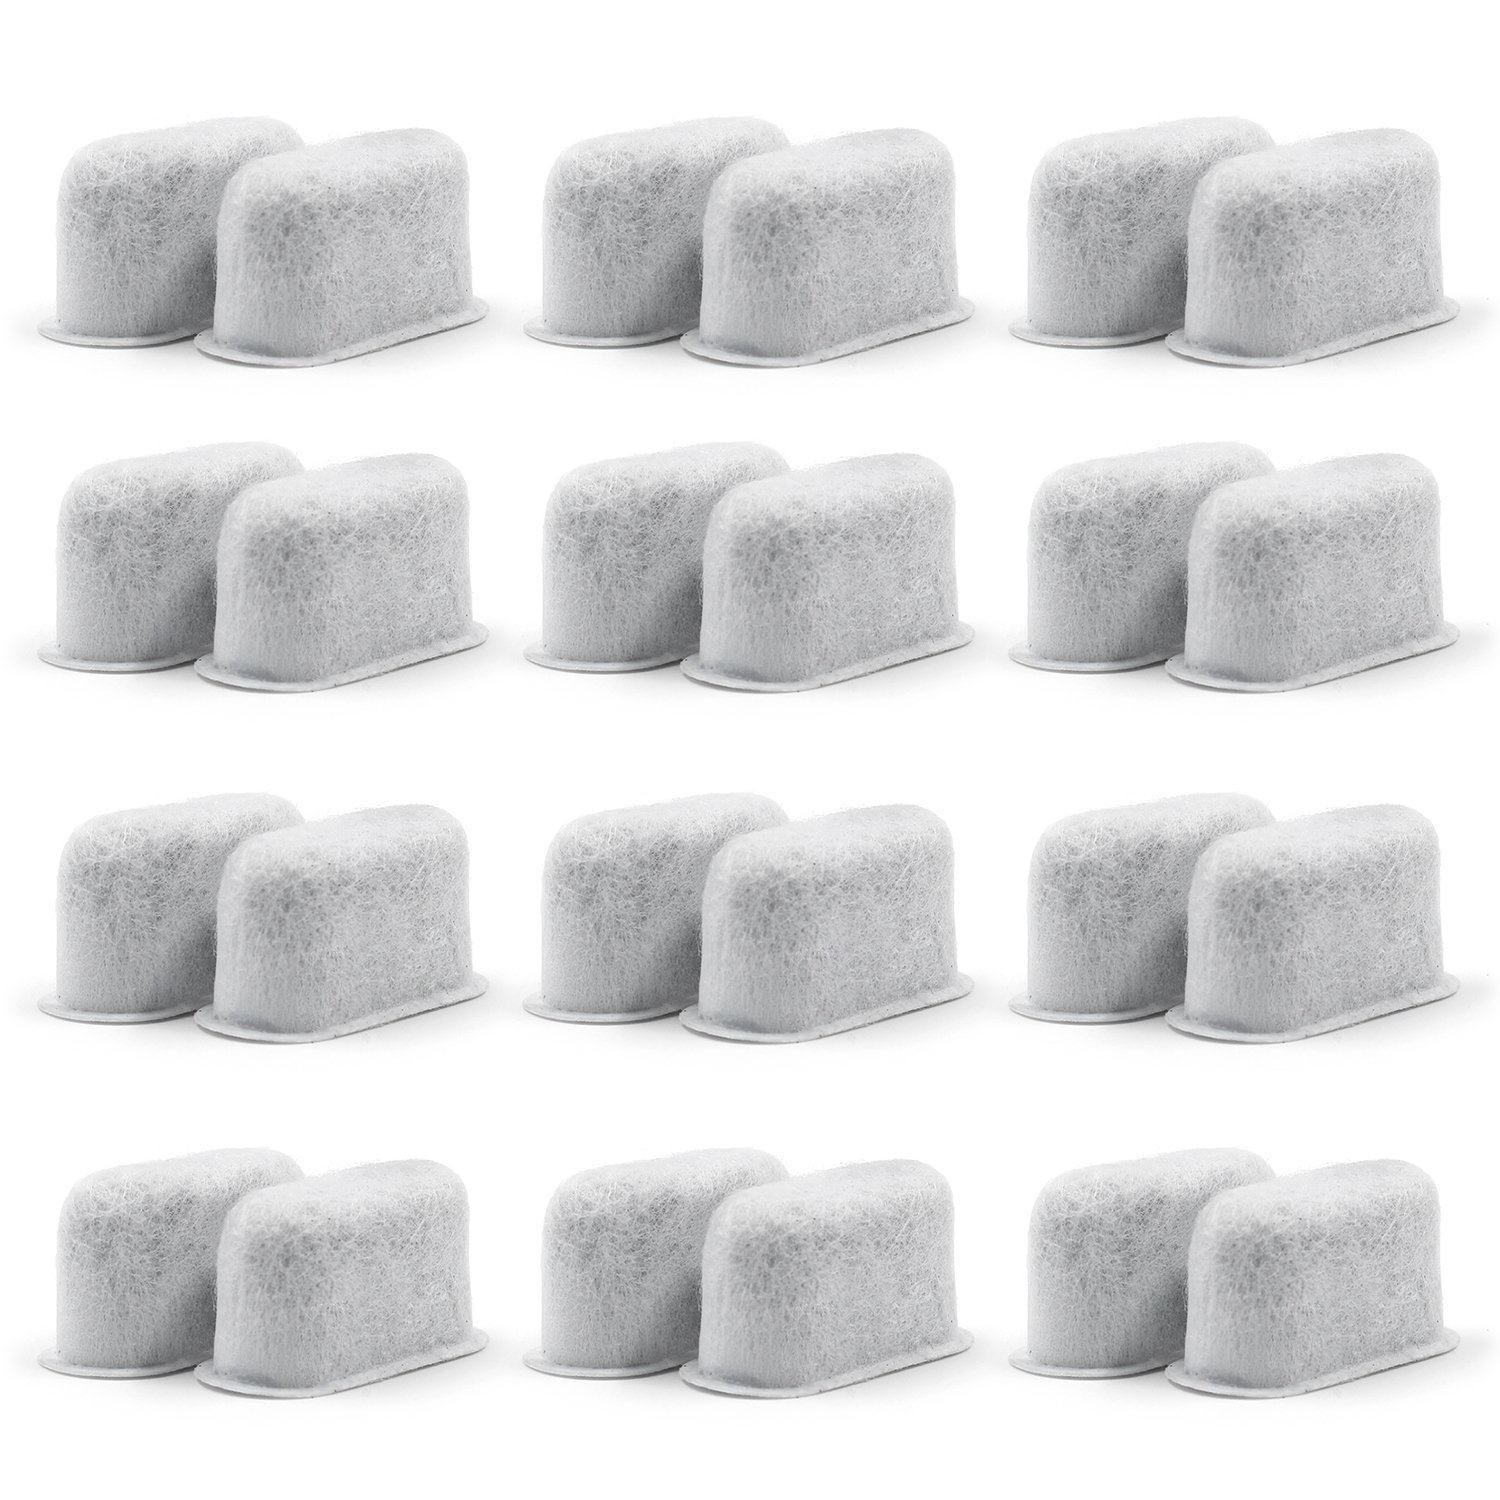 Replacement Charcoal Water Filters -Removes Chlorine, odors, and others impurities from Water -Better Tasting Coffee-for Cuisinart Coffee Machines- Set of 24 pack